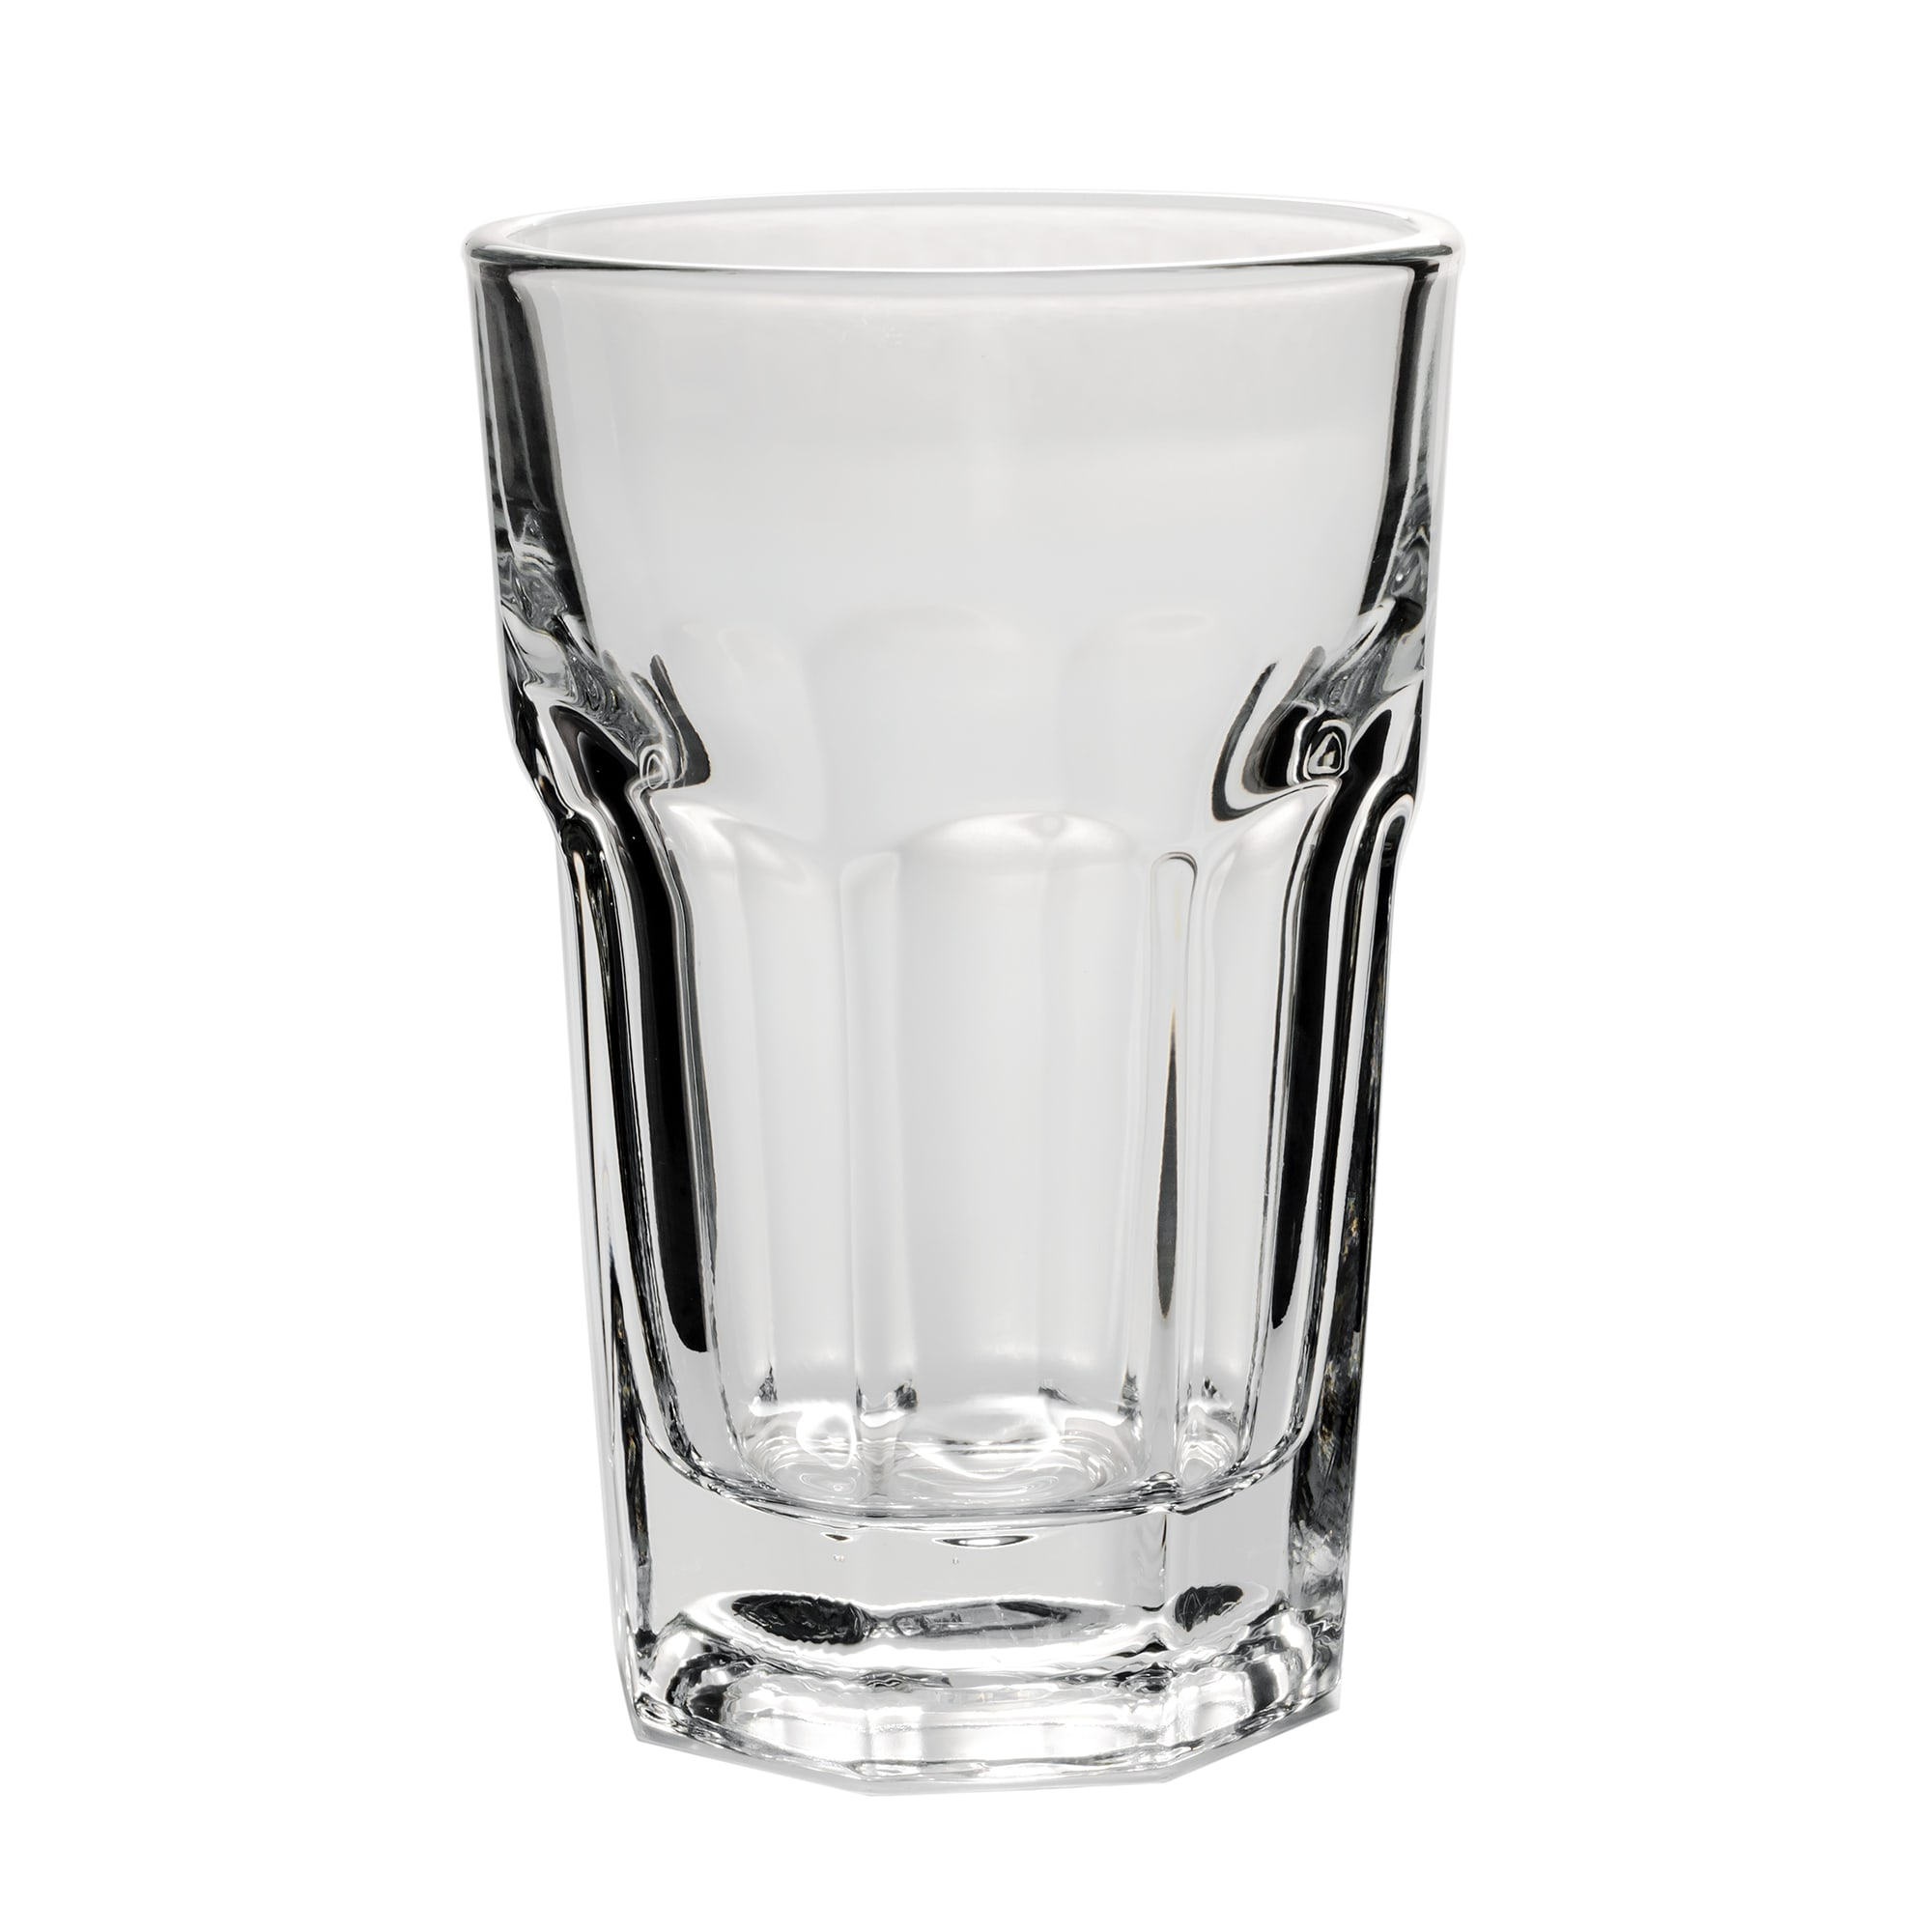 Libbey 15236 9 oz DuraTuff Gibraltar Hi-Ball Glass